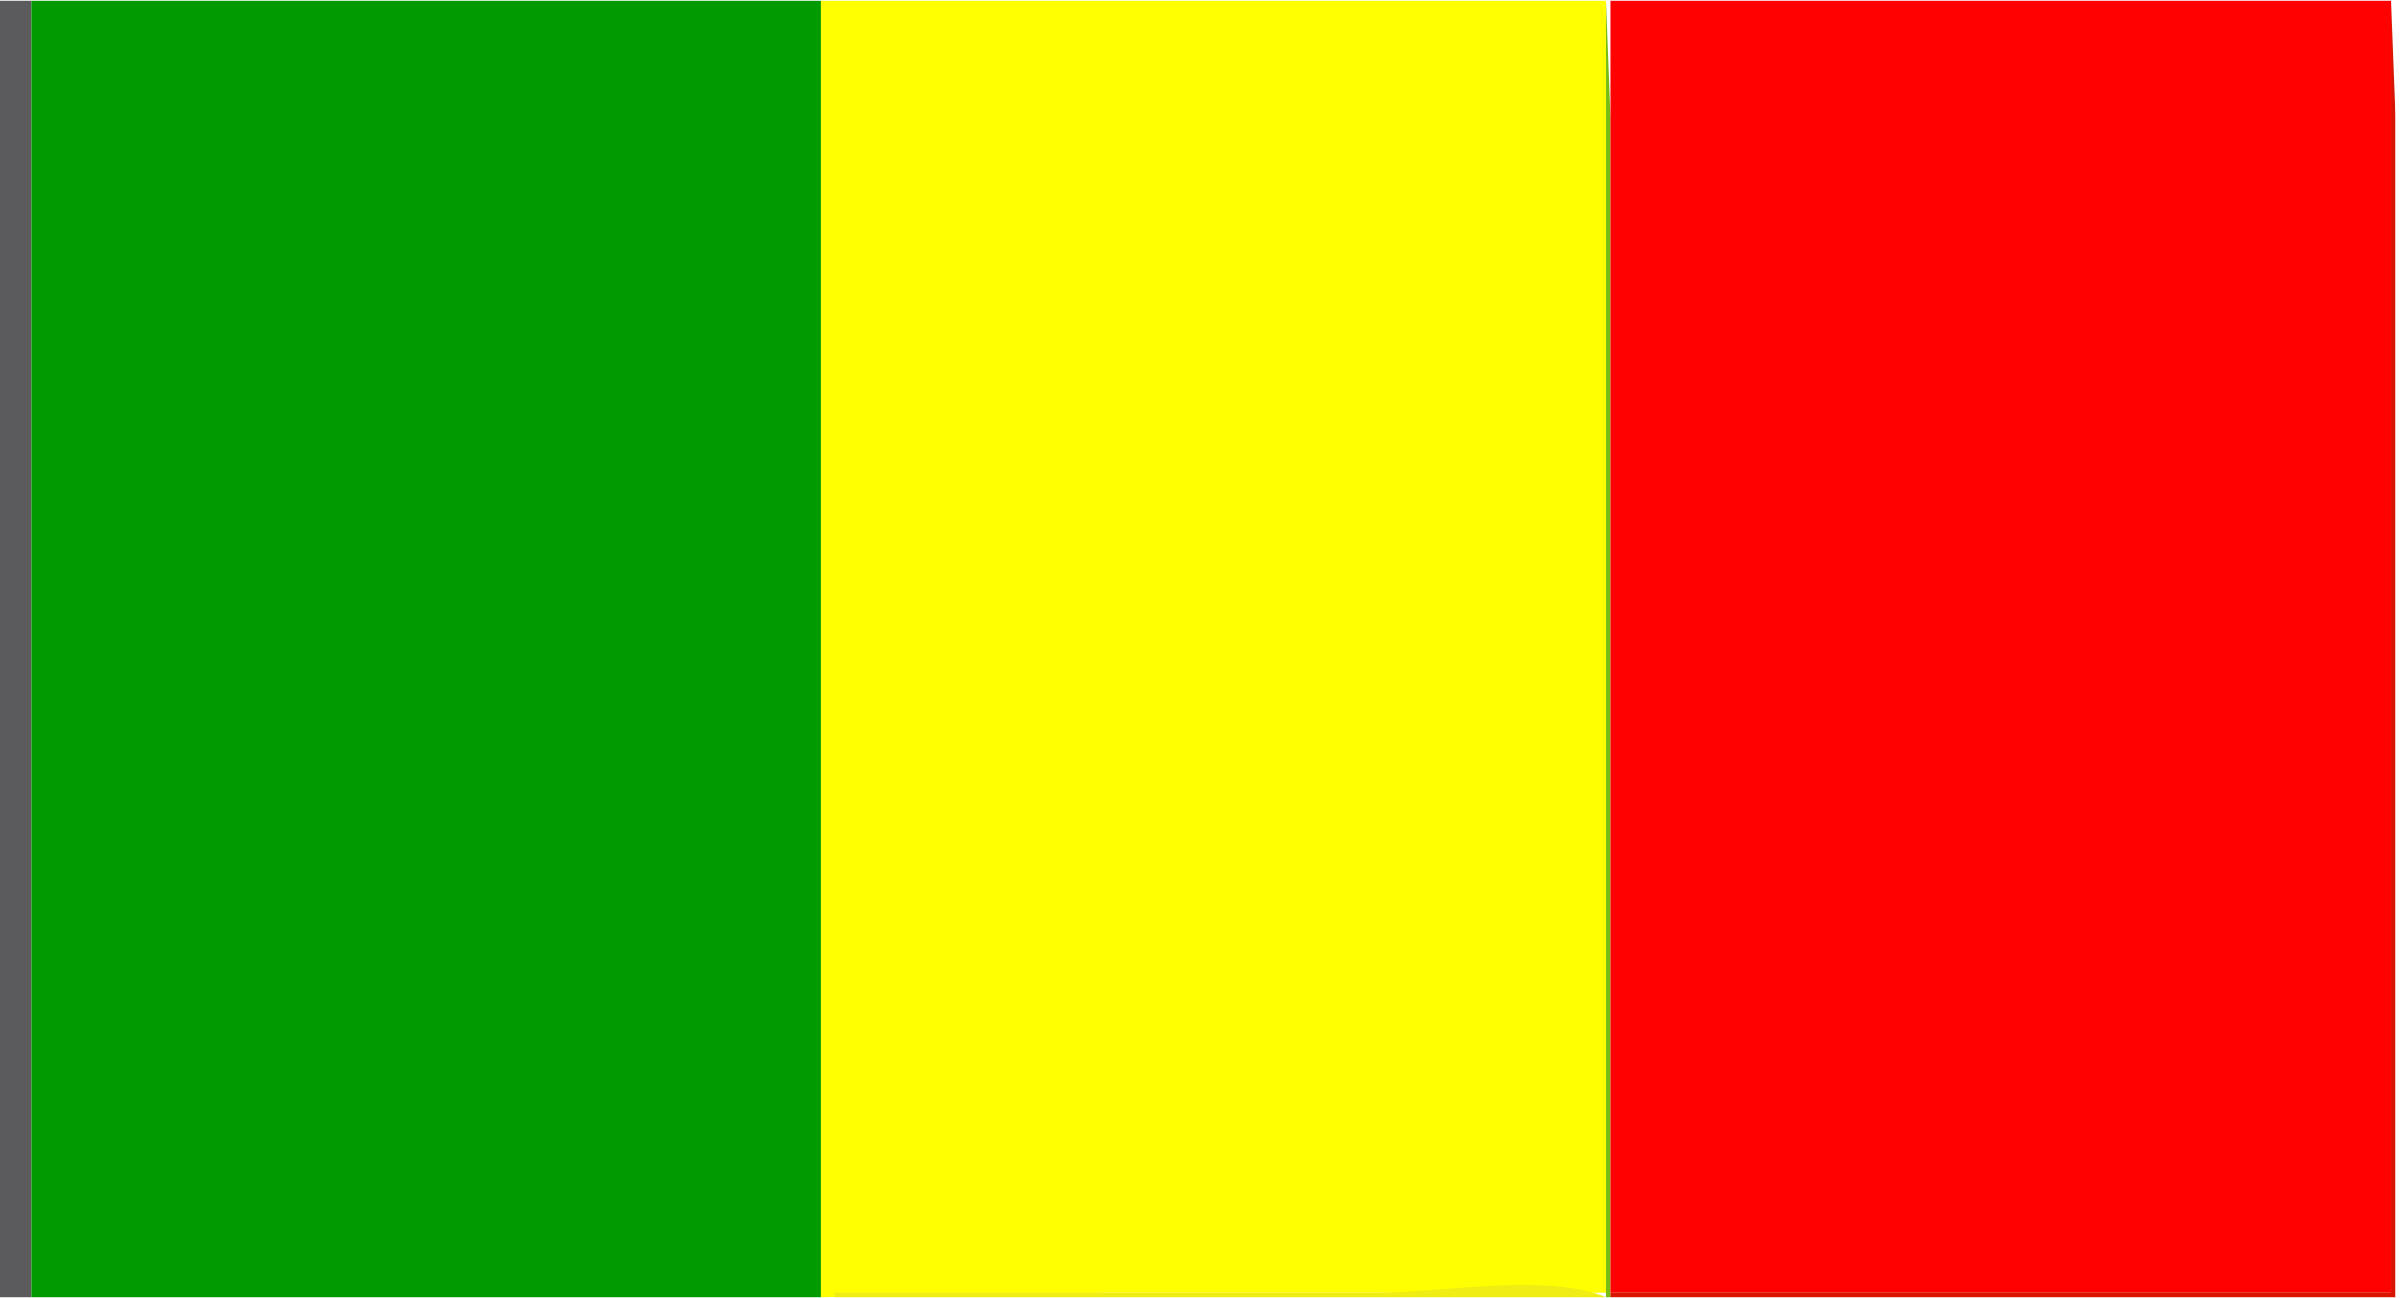 Flag of Mali by Joesph